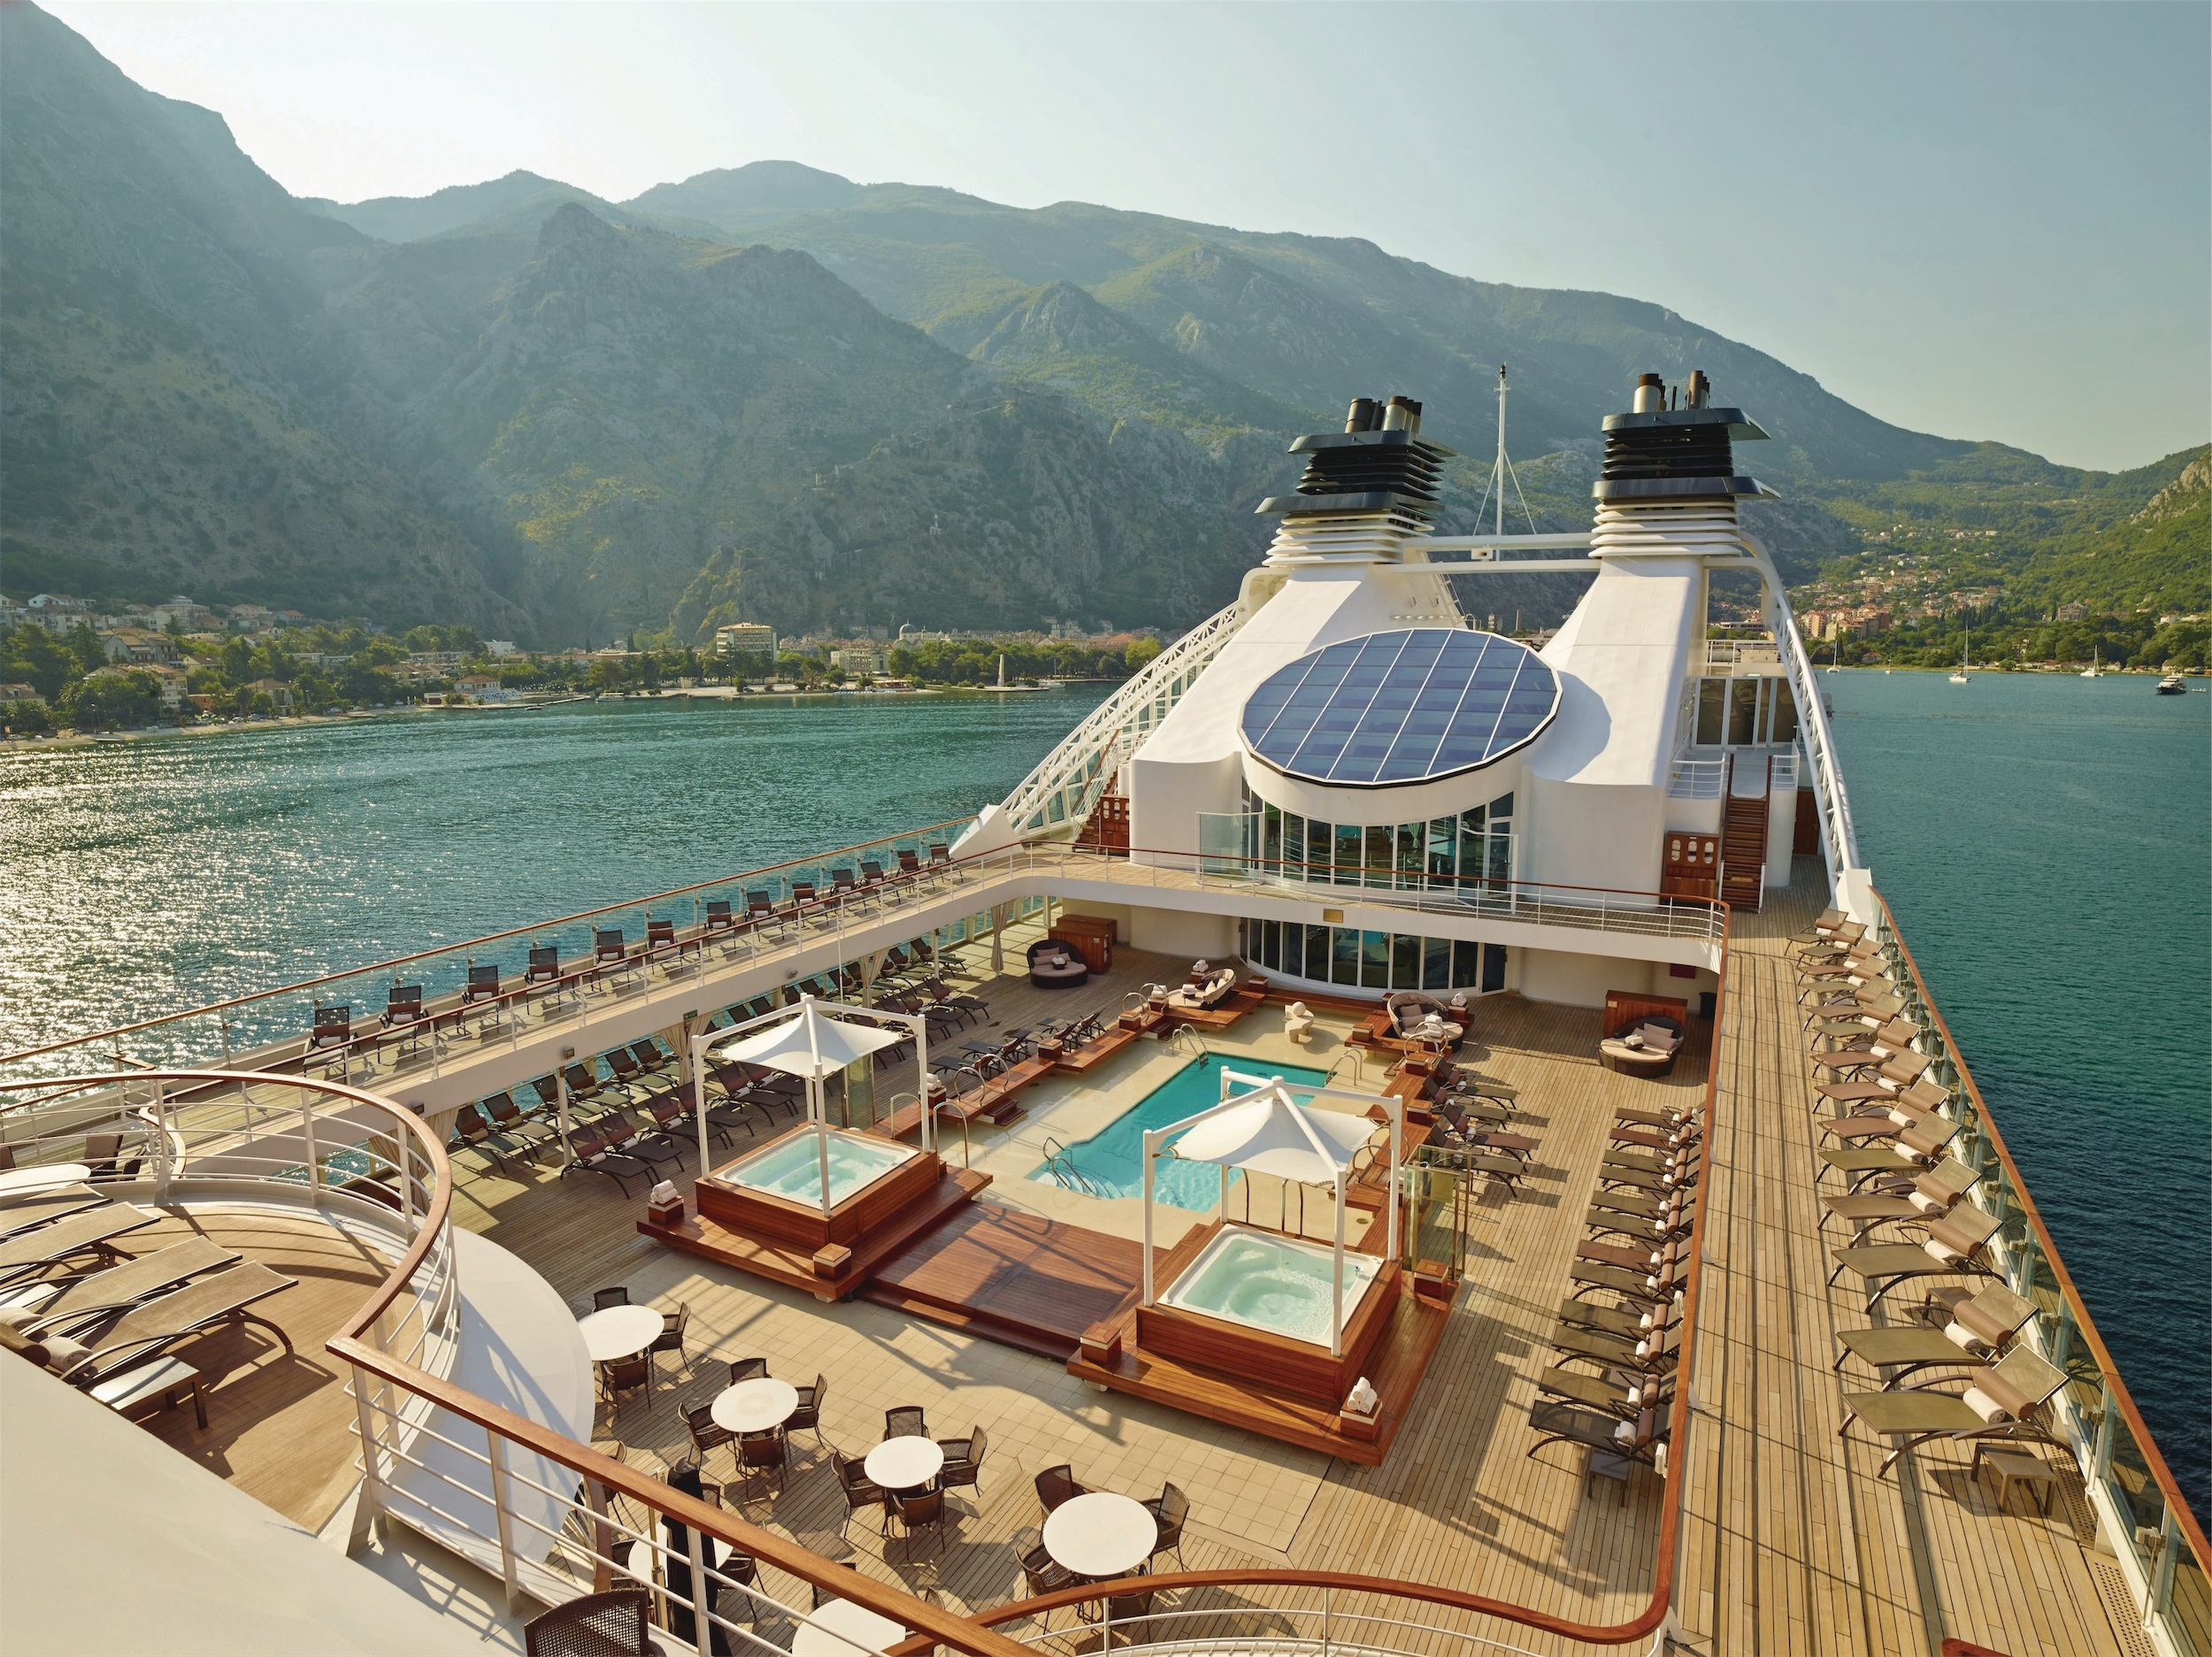 Seabourn Odyssey Class Exterior Pool Deck 2.jpg